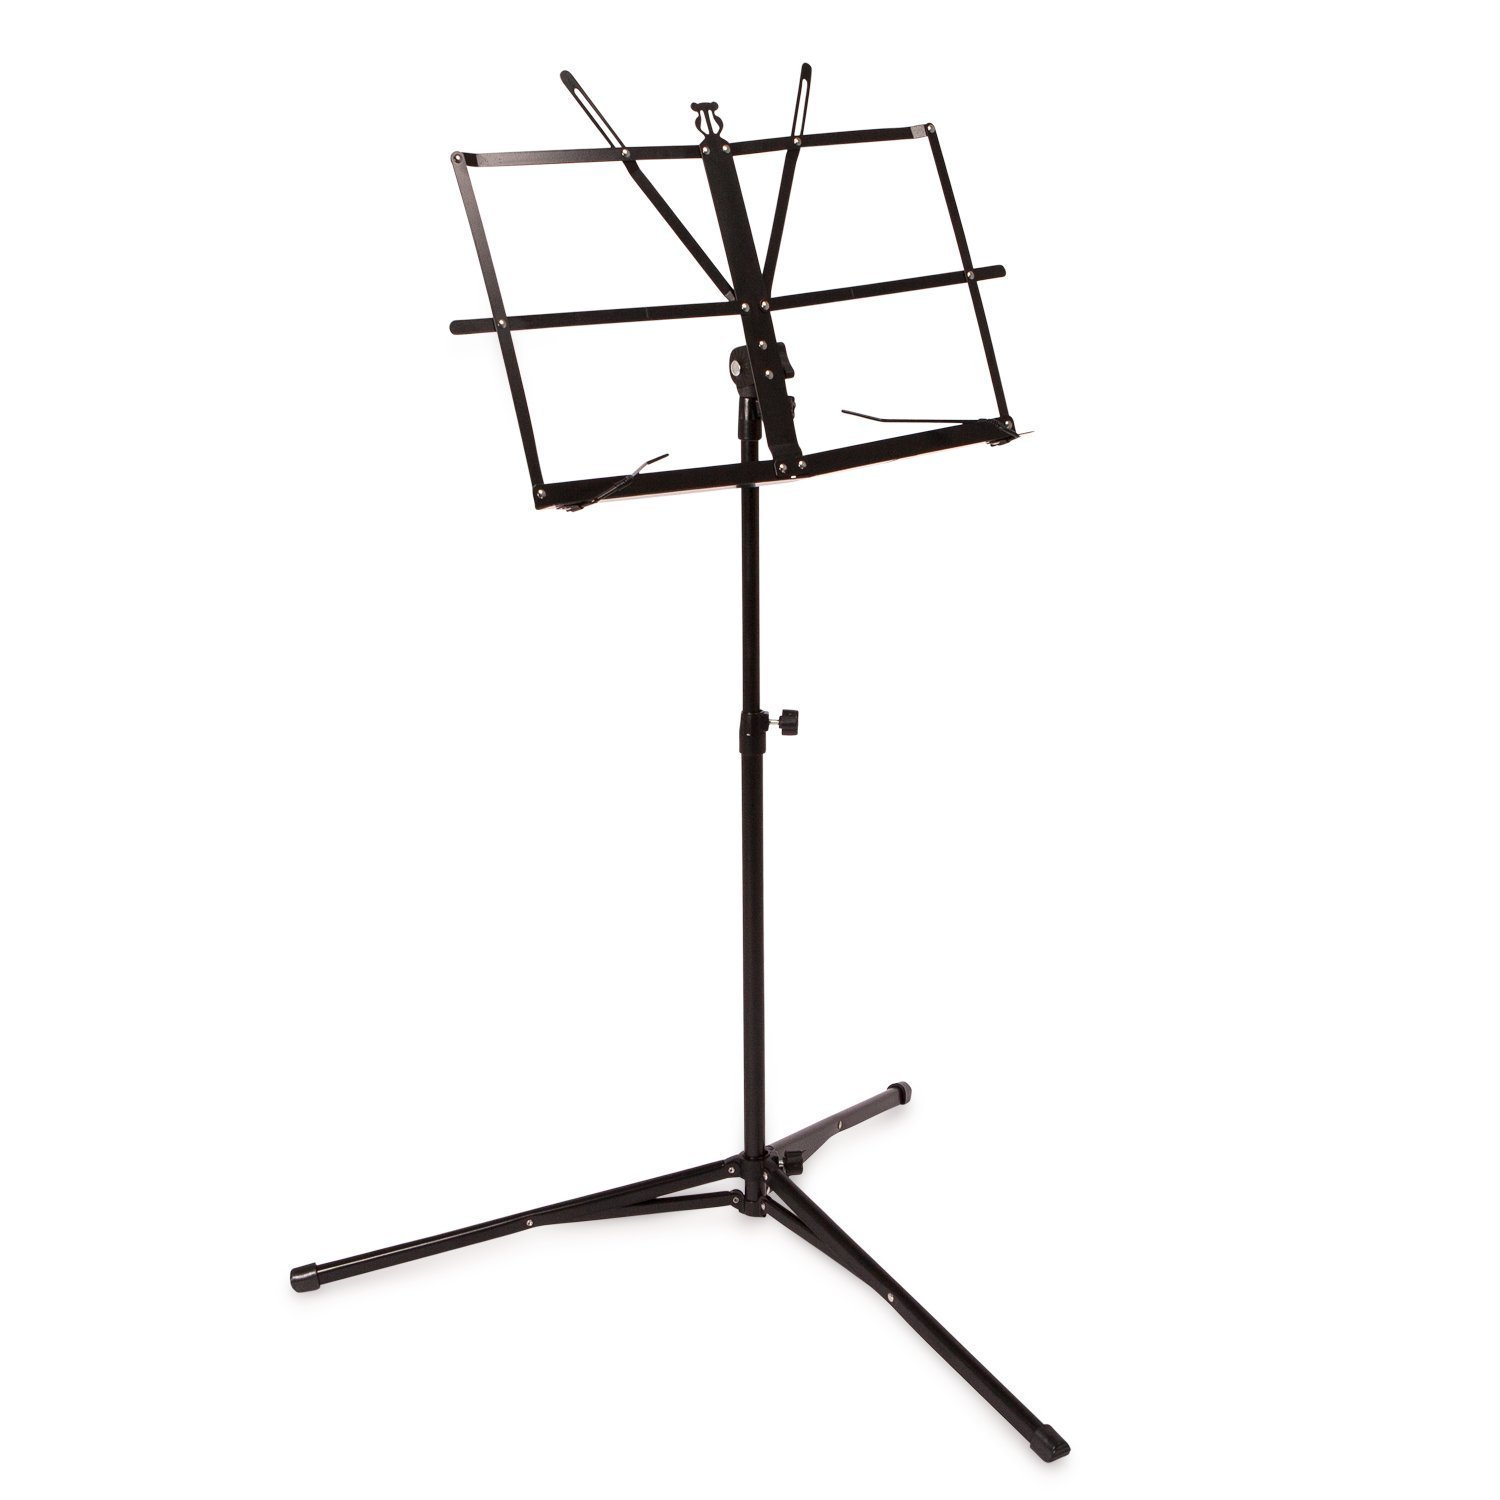 Crafty Gizmos Black Adjustable Folding Music Stand with Carrying Bag MS20BK